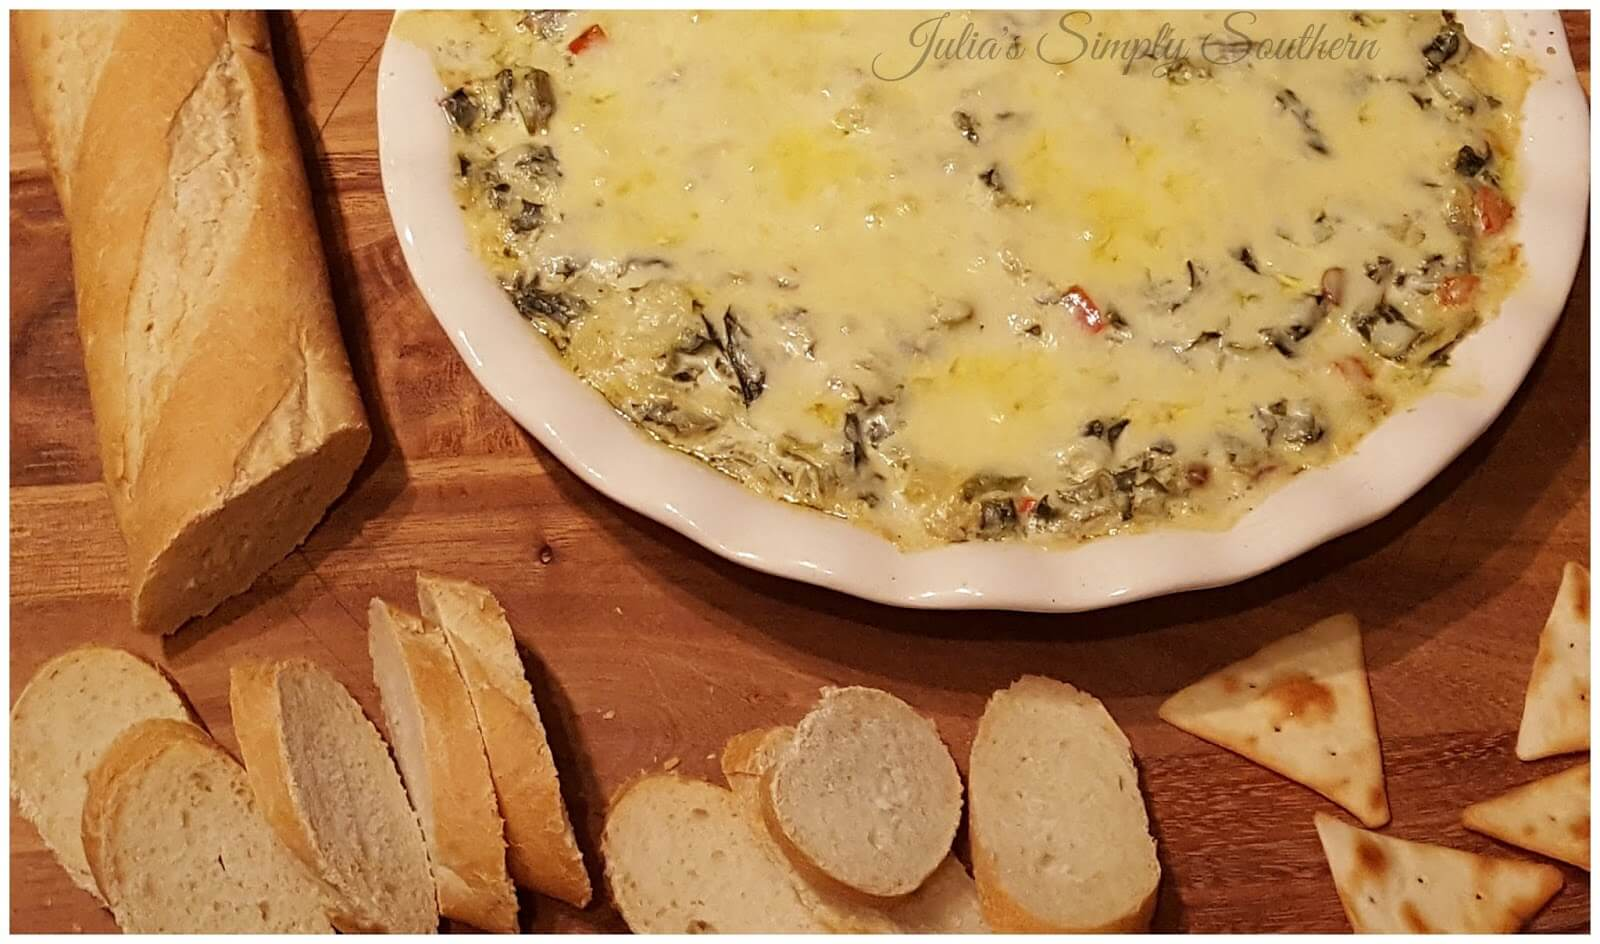 Hot dip recipes with artichoke and collards